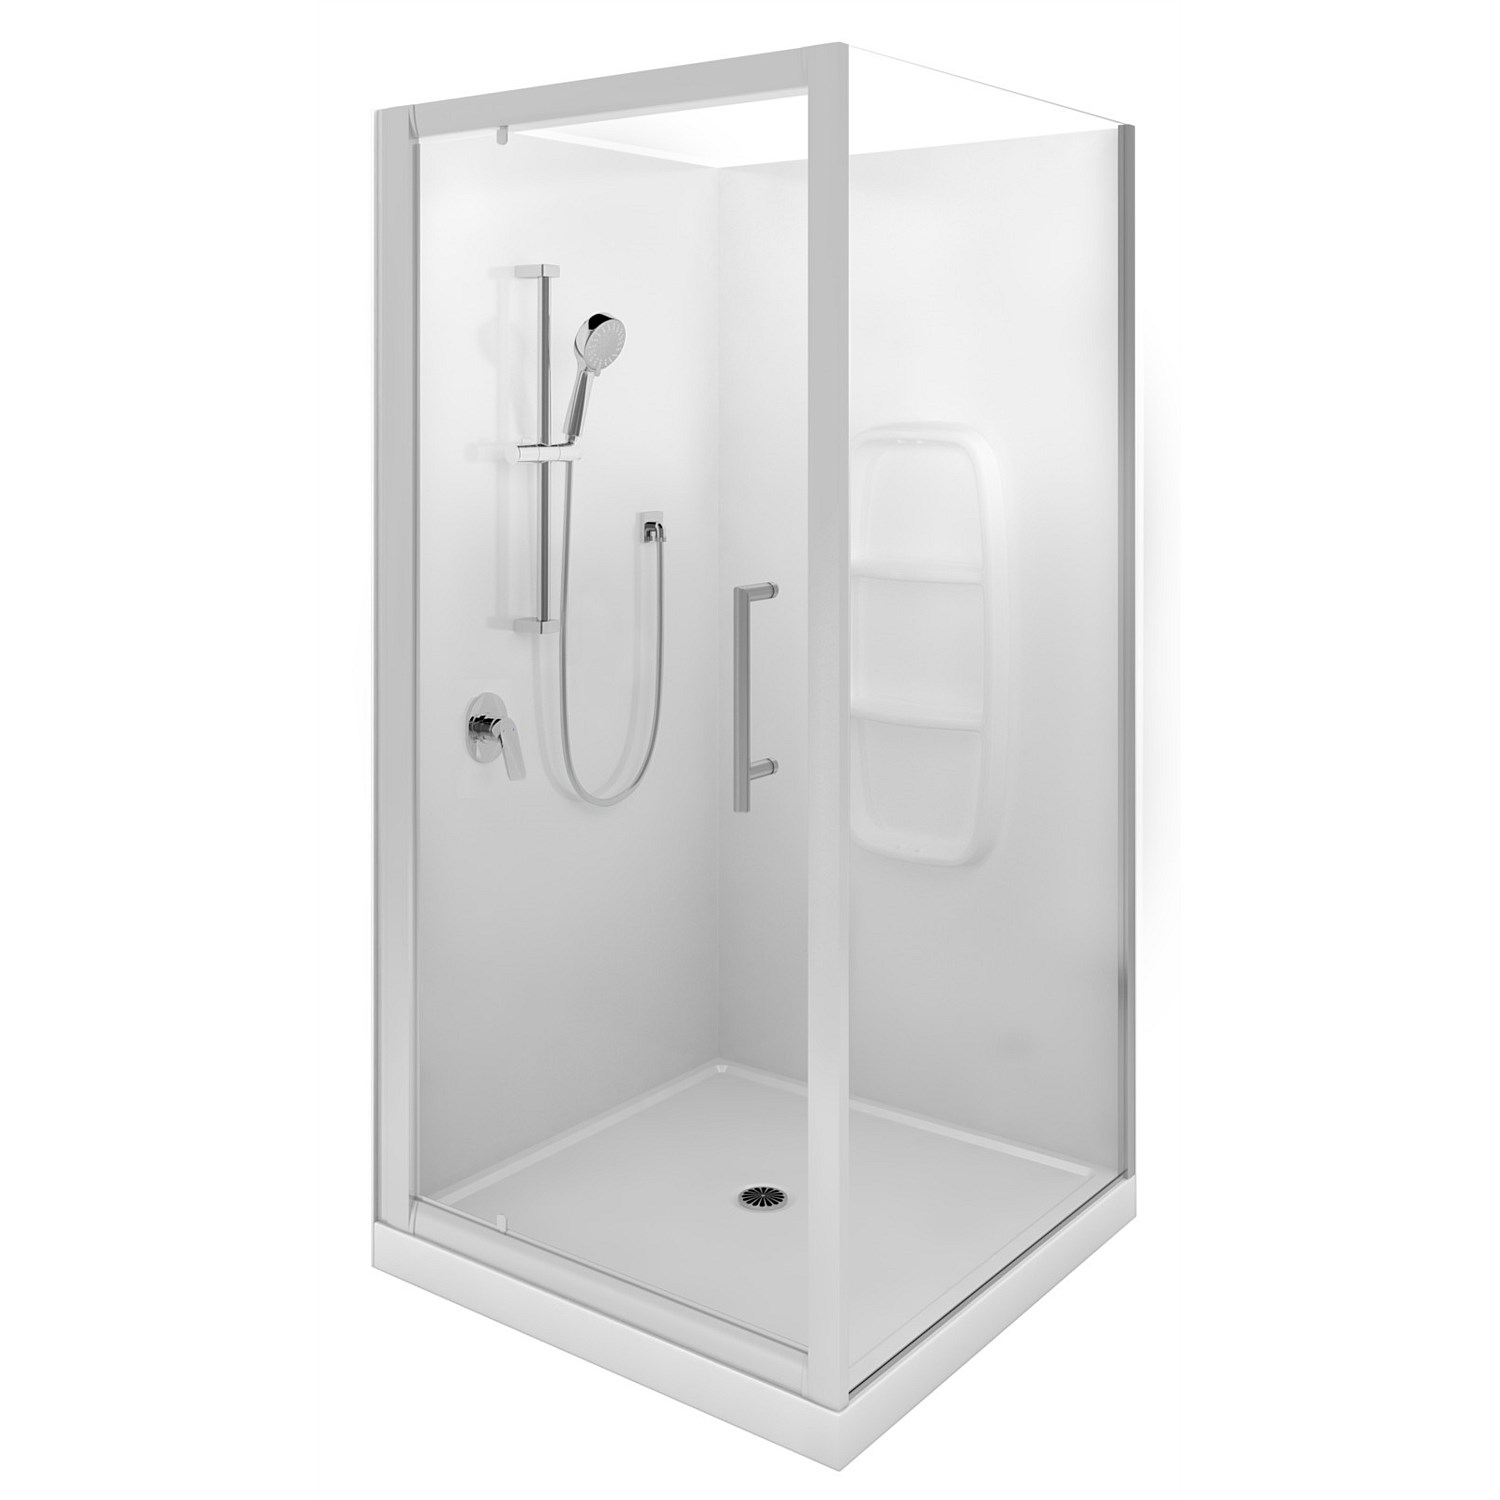 How to install shower plumbing Shower Faucet Start By Talking To The Experienced Team At Plumbing World We Can Help You Choose And Install Fittings That Will Let You Get The Most Out Of Your Bathroom Plumbing World Showers Plumbing World Levivi Cabris 900mm Square Shower